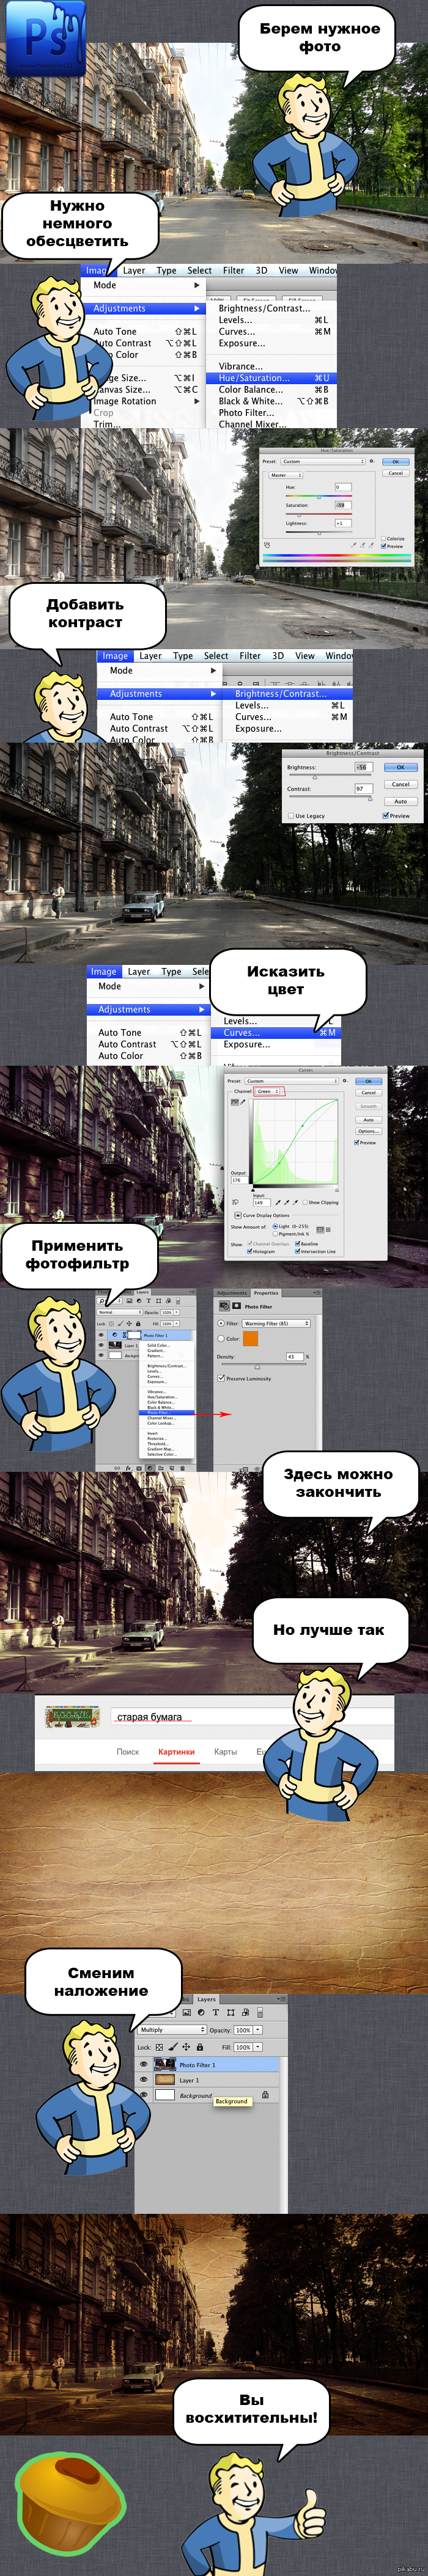 Секс шаблоны для photoshop cs3